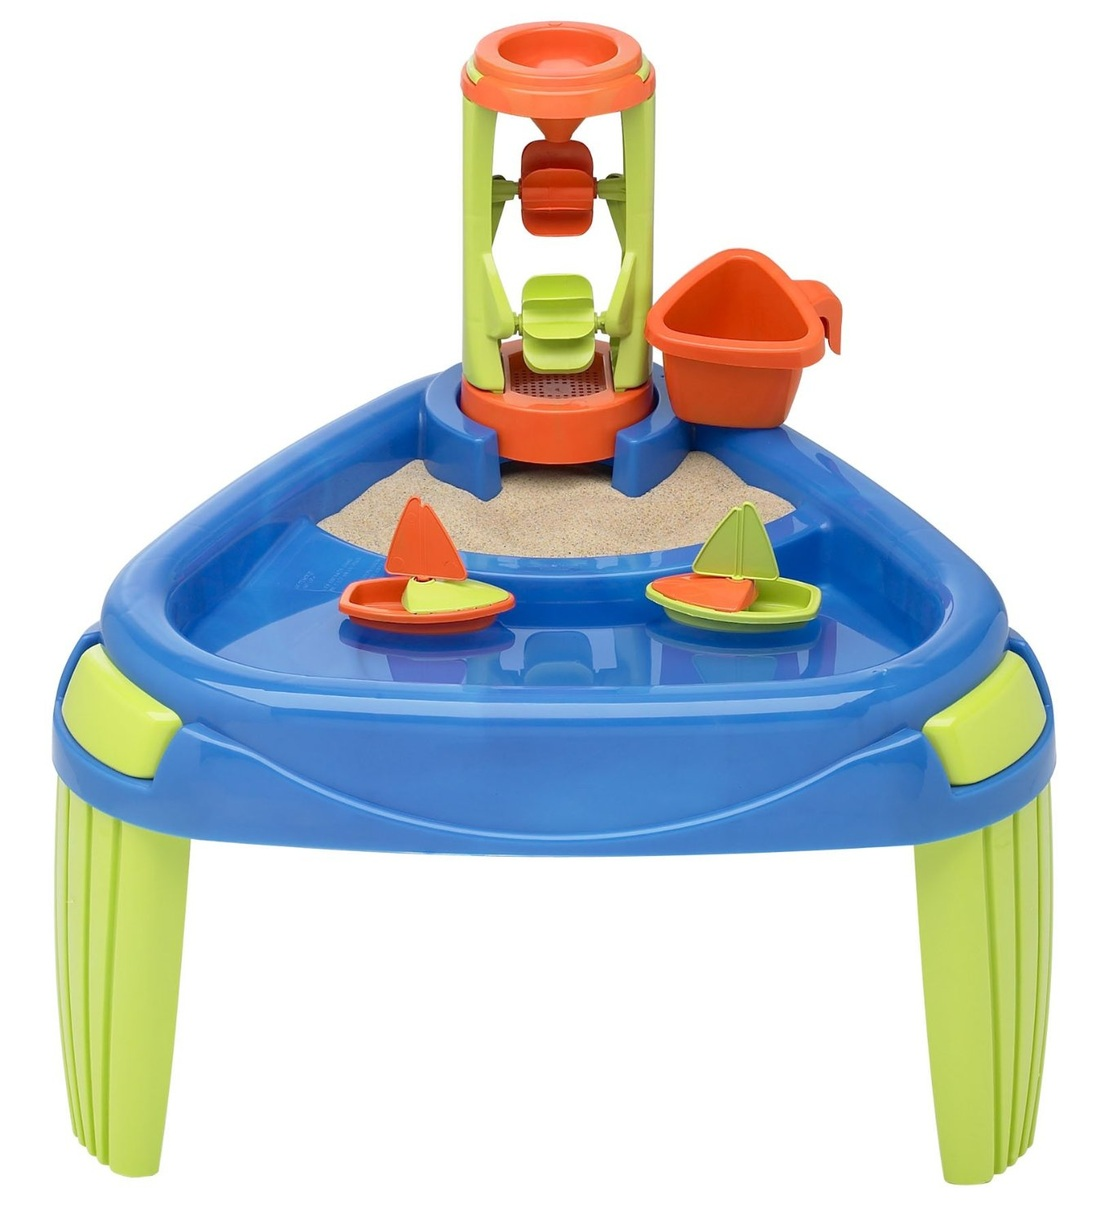 AMERICAN PLASTIC WATER WHEEL AND SAND PLAY TABLE